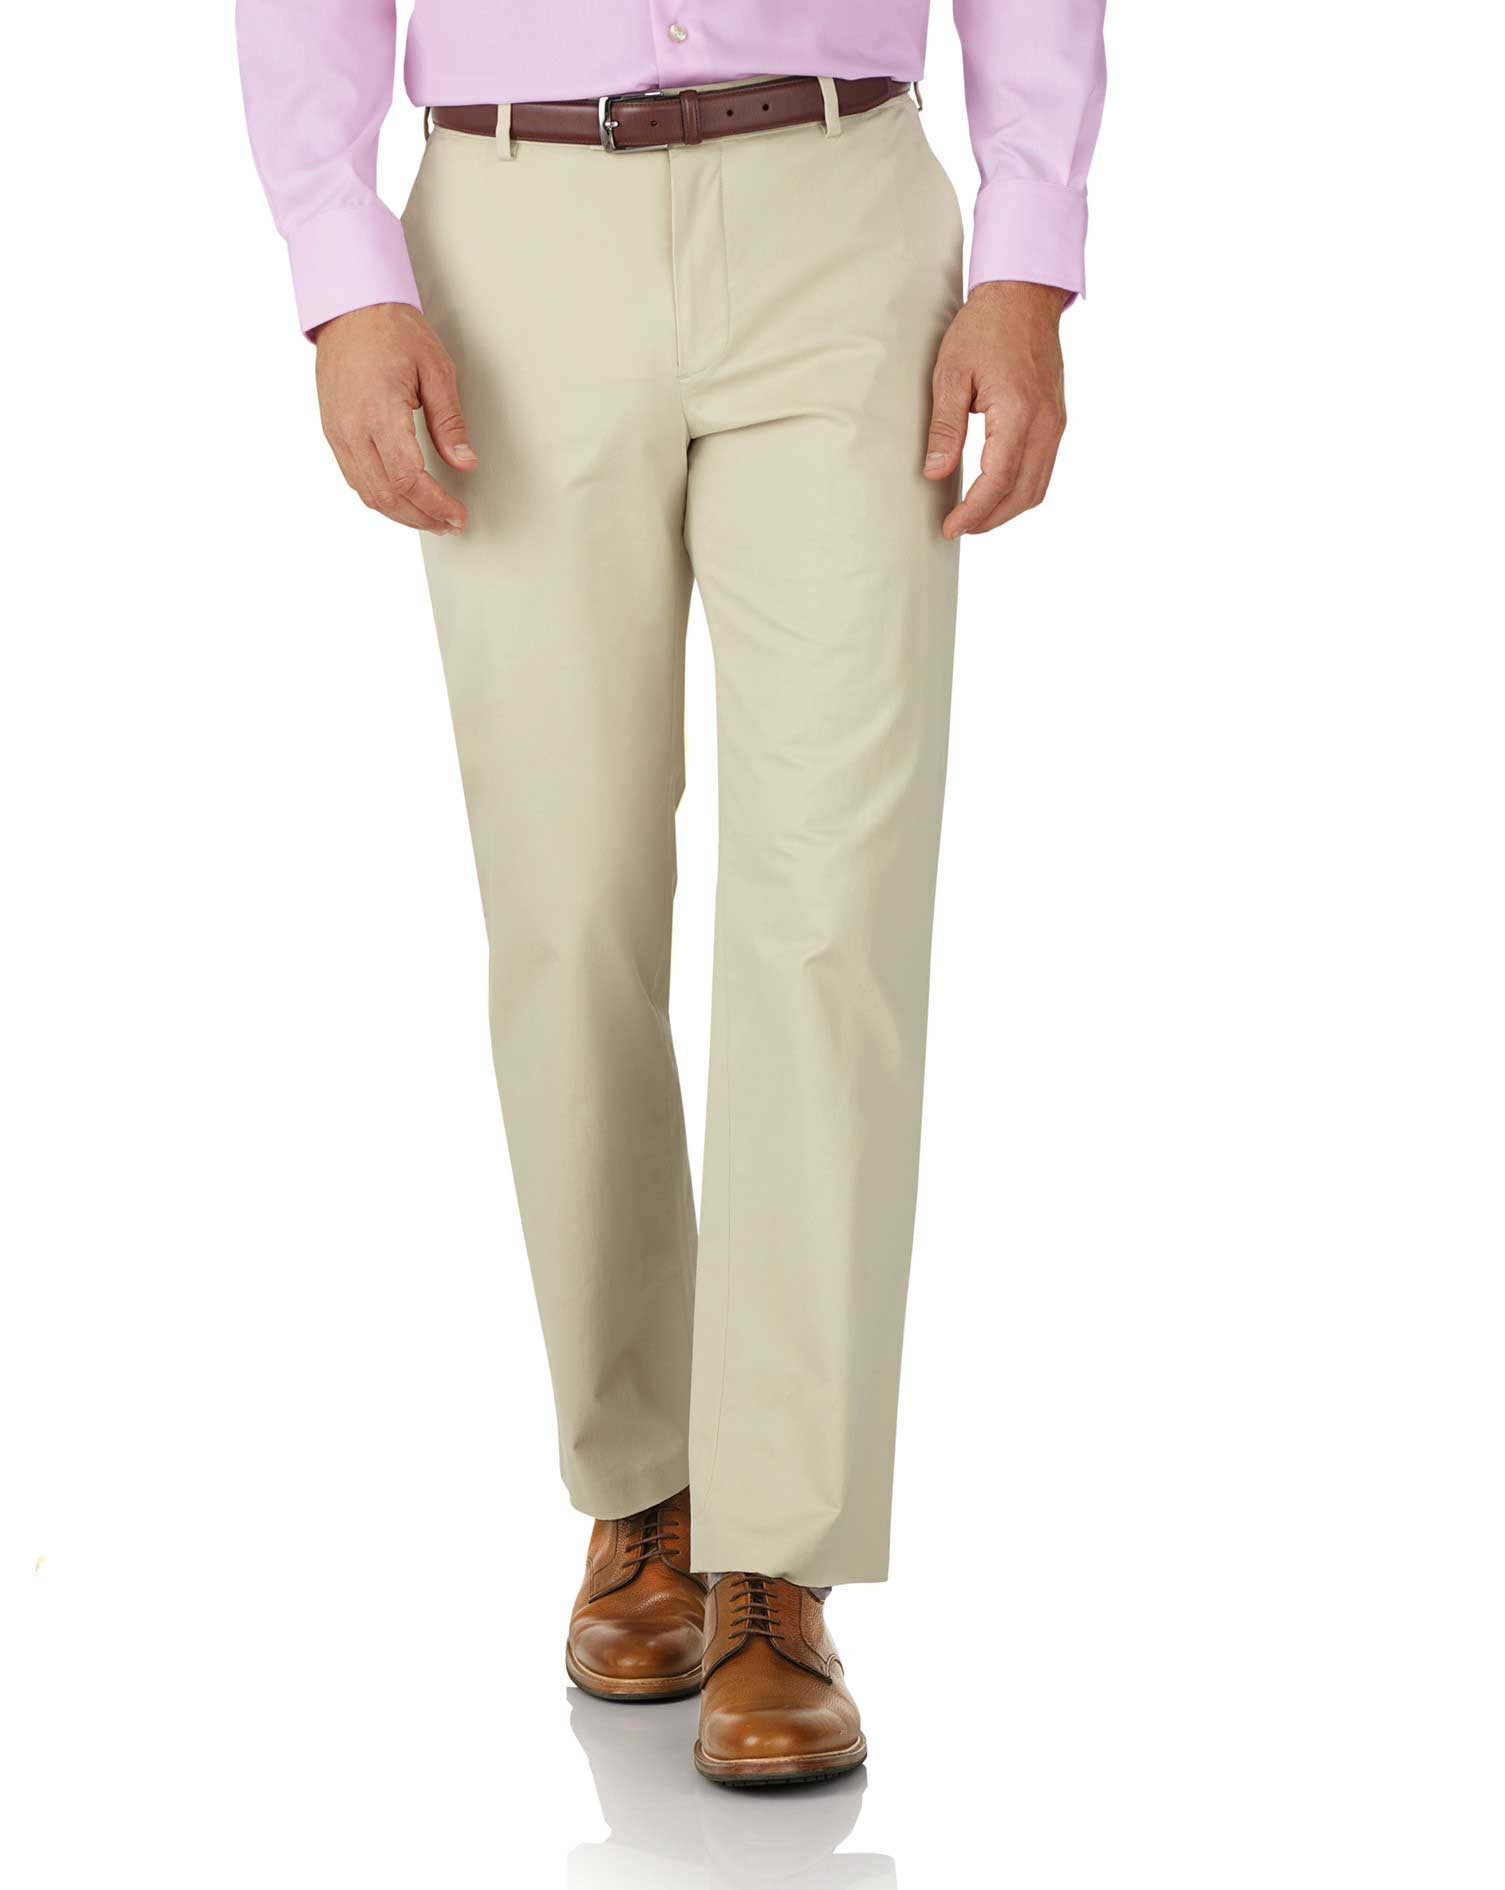 Stone Classic Fit Stretch Cotton Chino Trousers Size W40 L30 by Charles Tyrwhitt